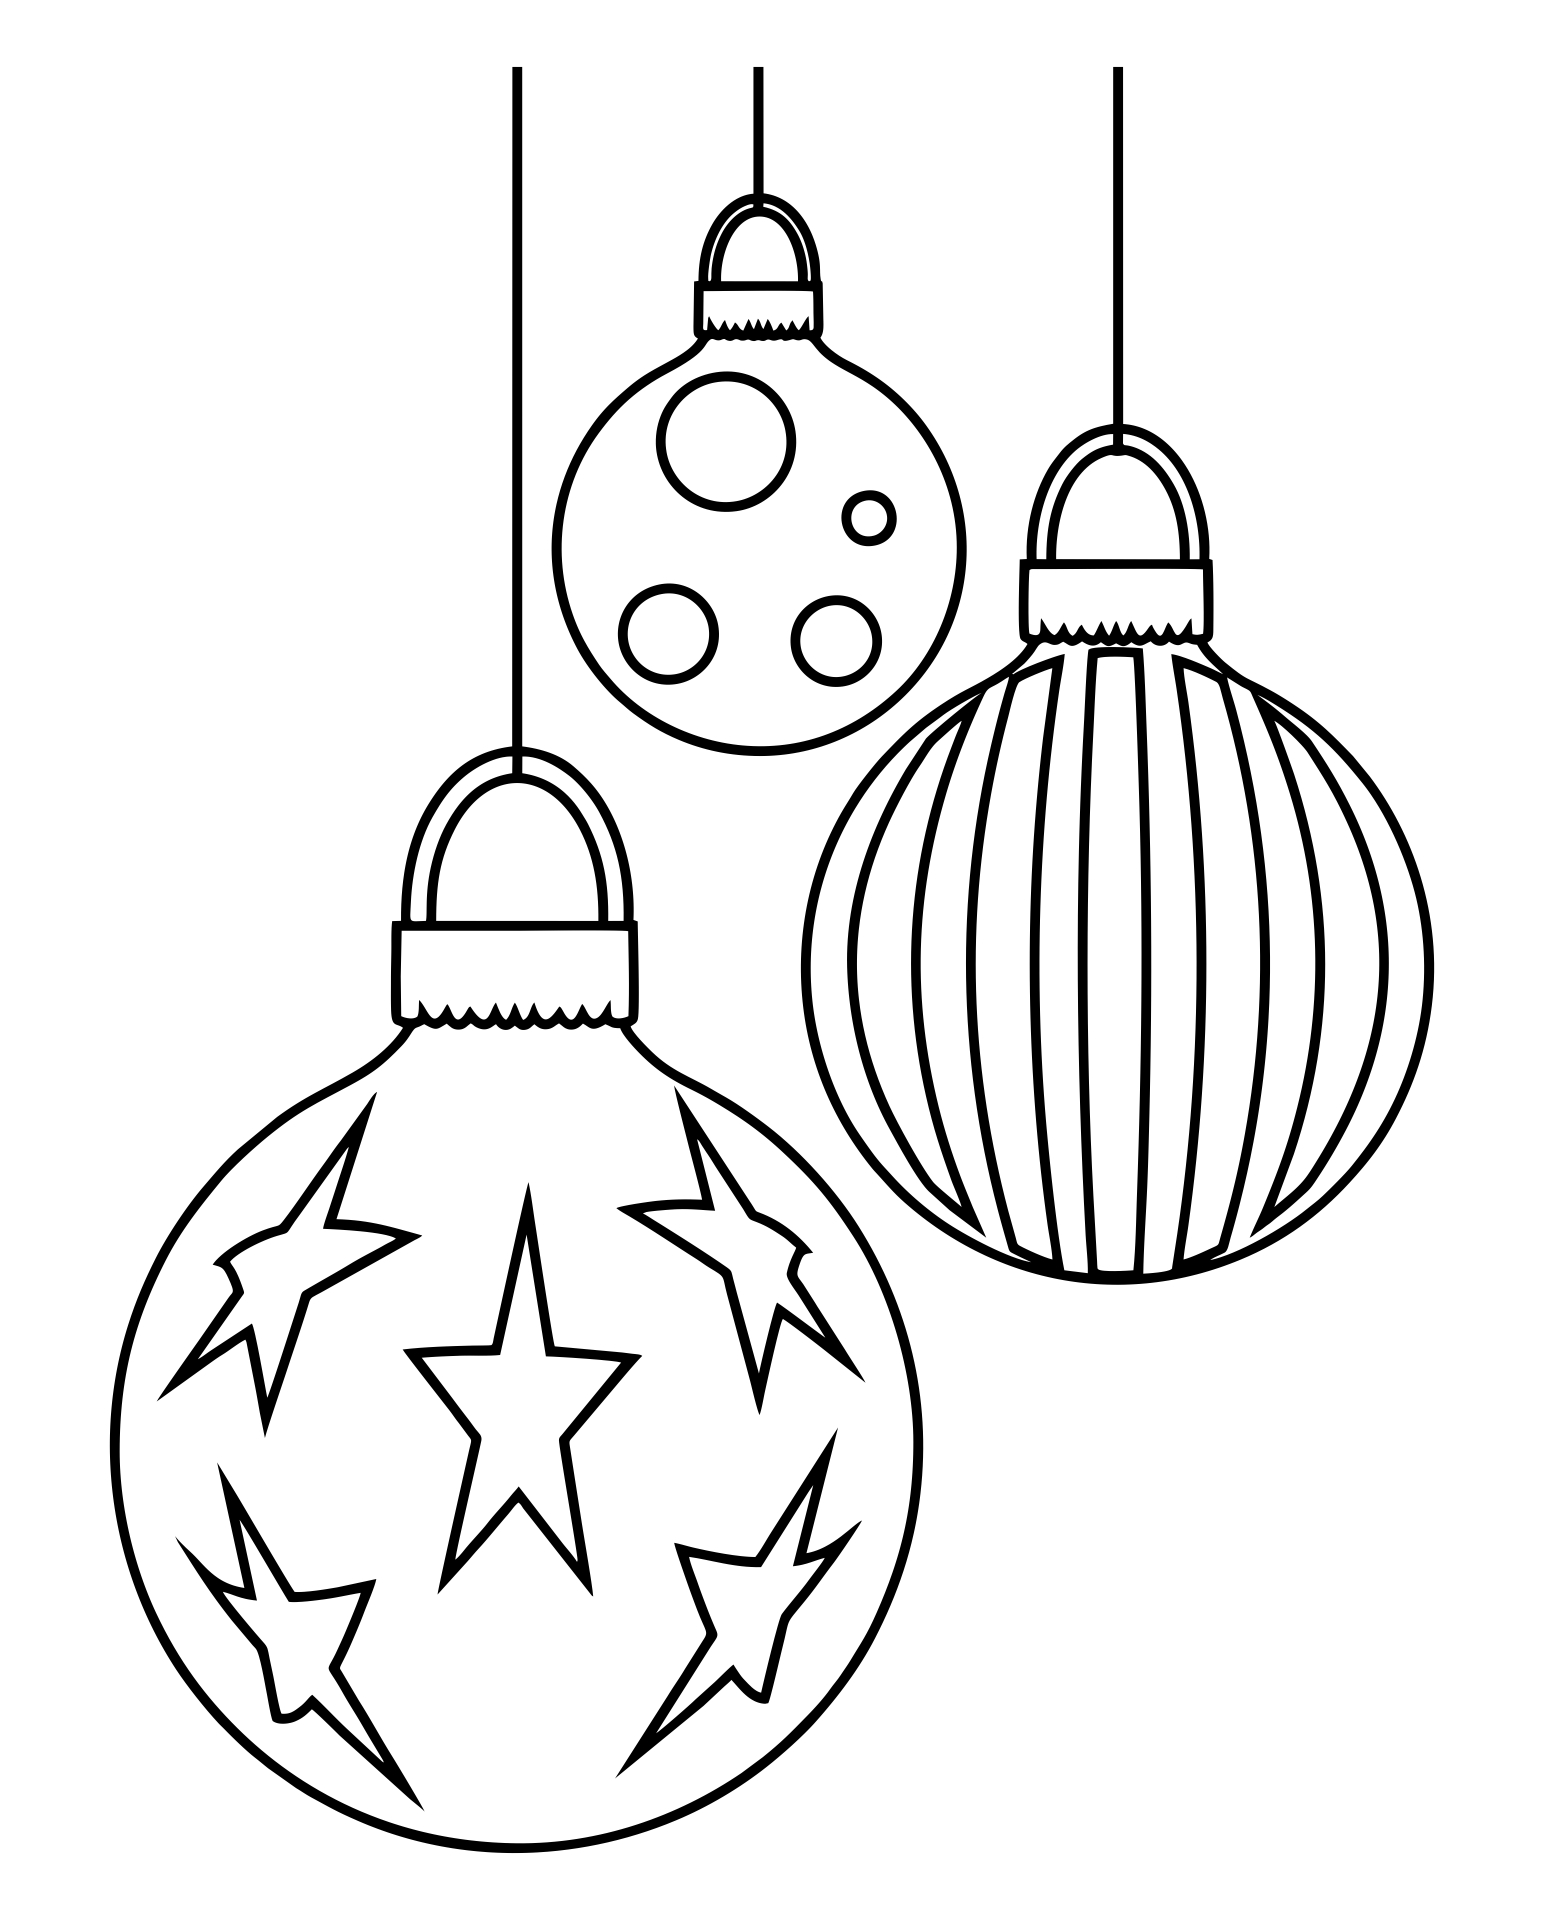 5 Images of Printable Christmas Ornaments To Color